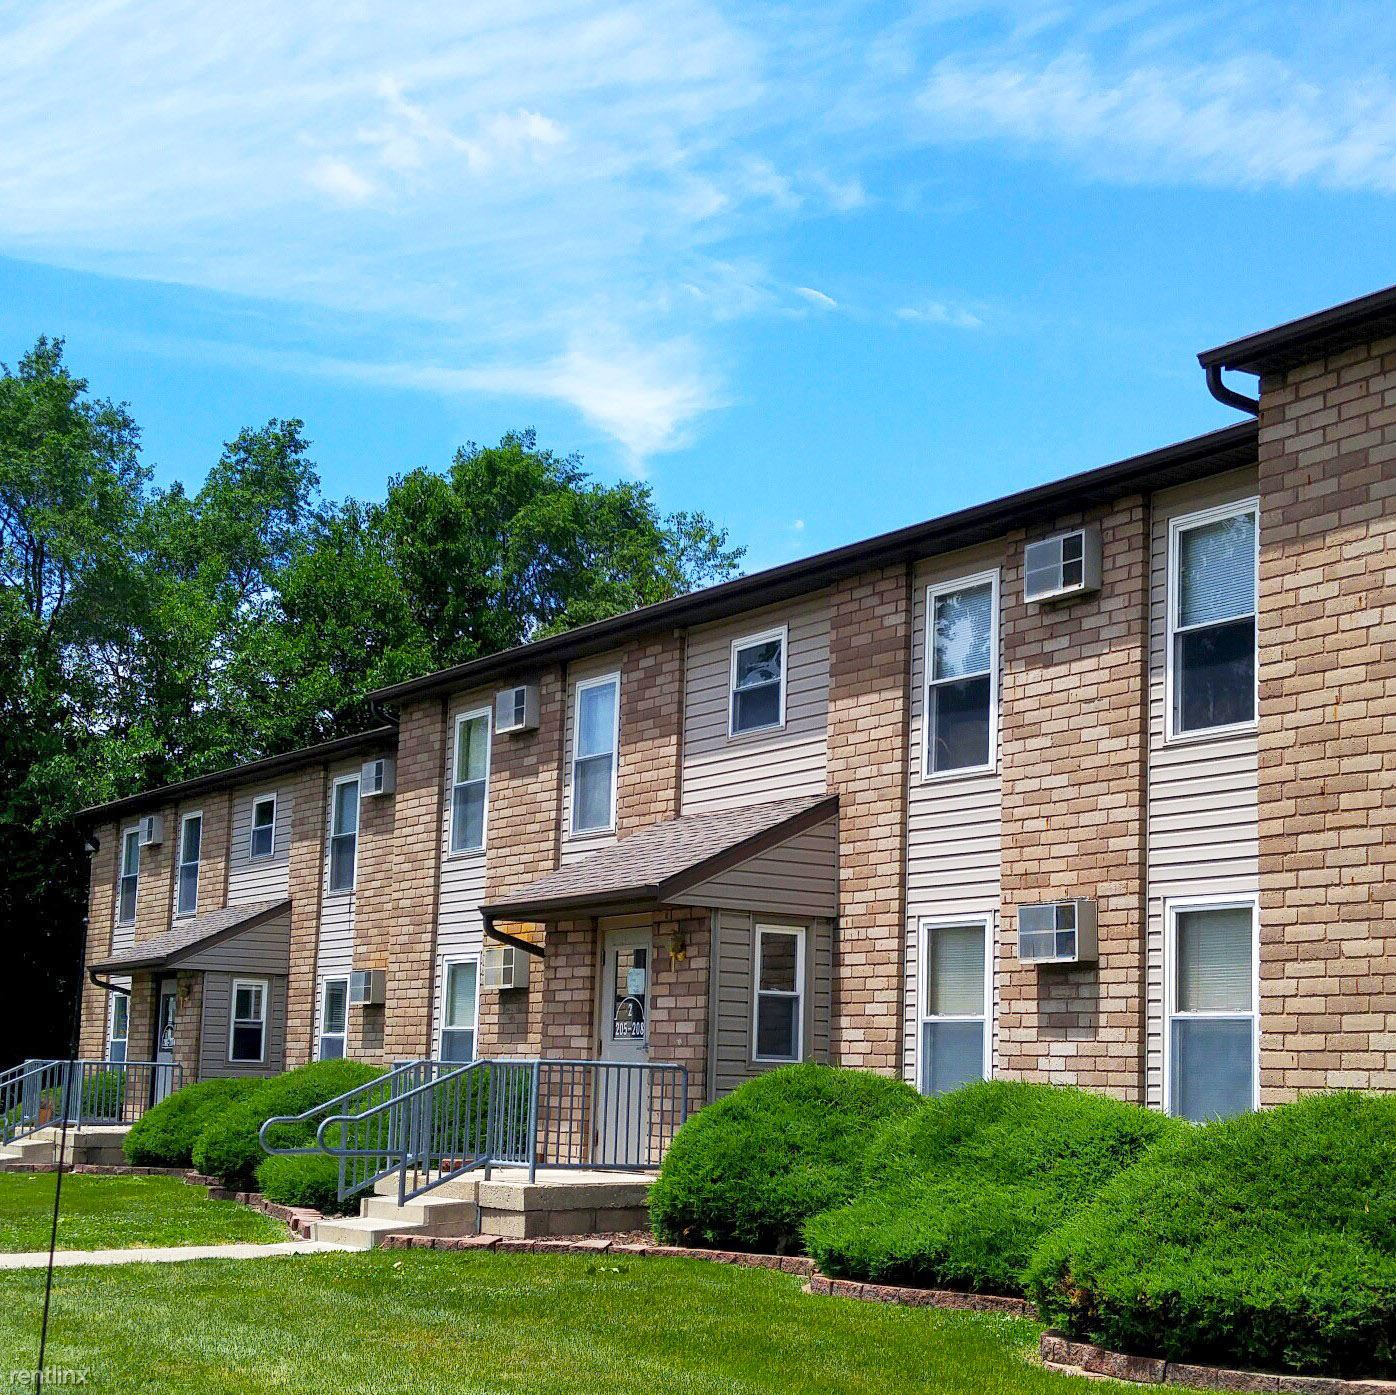 Dekalb Apartments: College Student Apartments